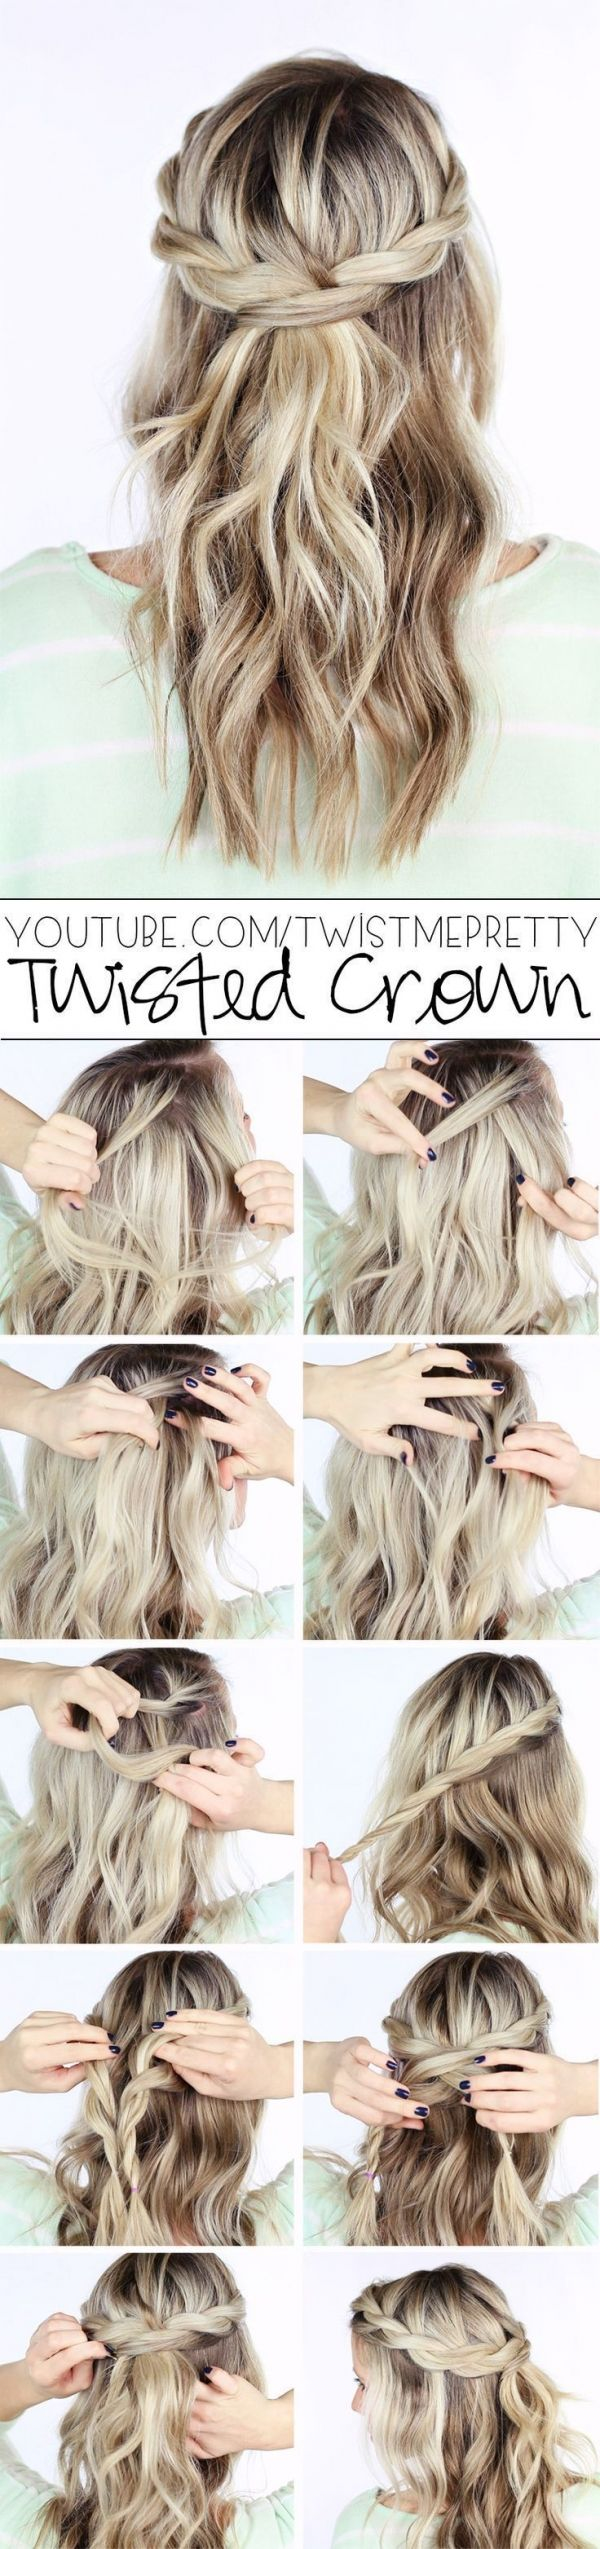 fabulous half up half down hairstyles step by step hair